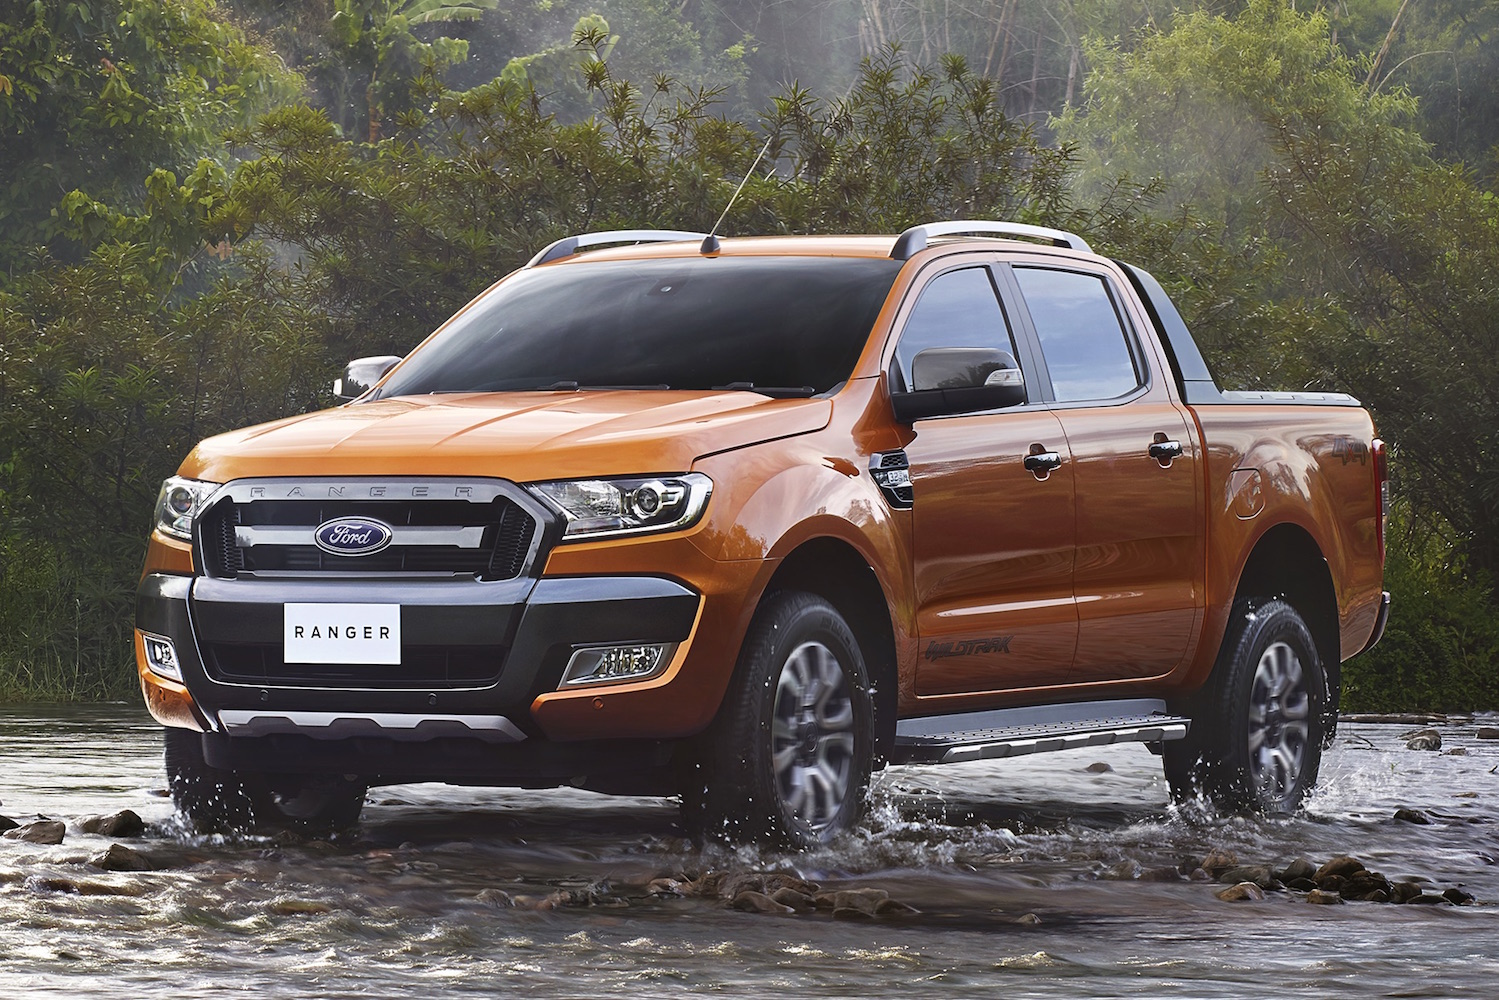 Ford May Outfit Its Ranger Pickup In Raptor Armor Before Unleashing It On The Tacoma TRD